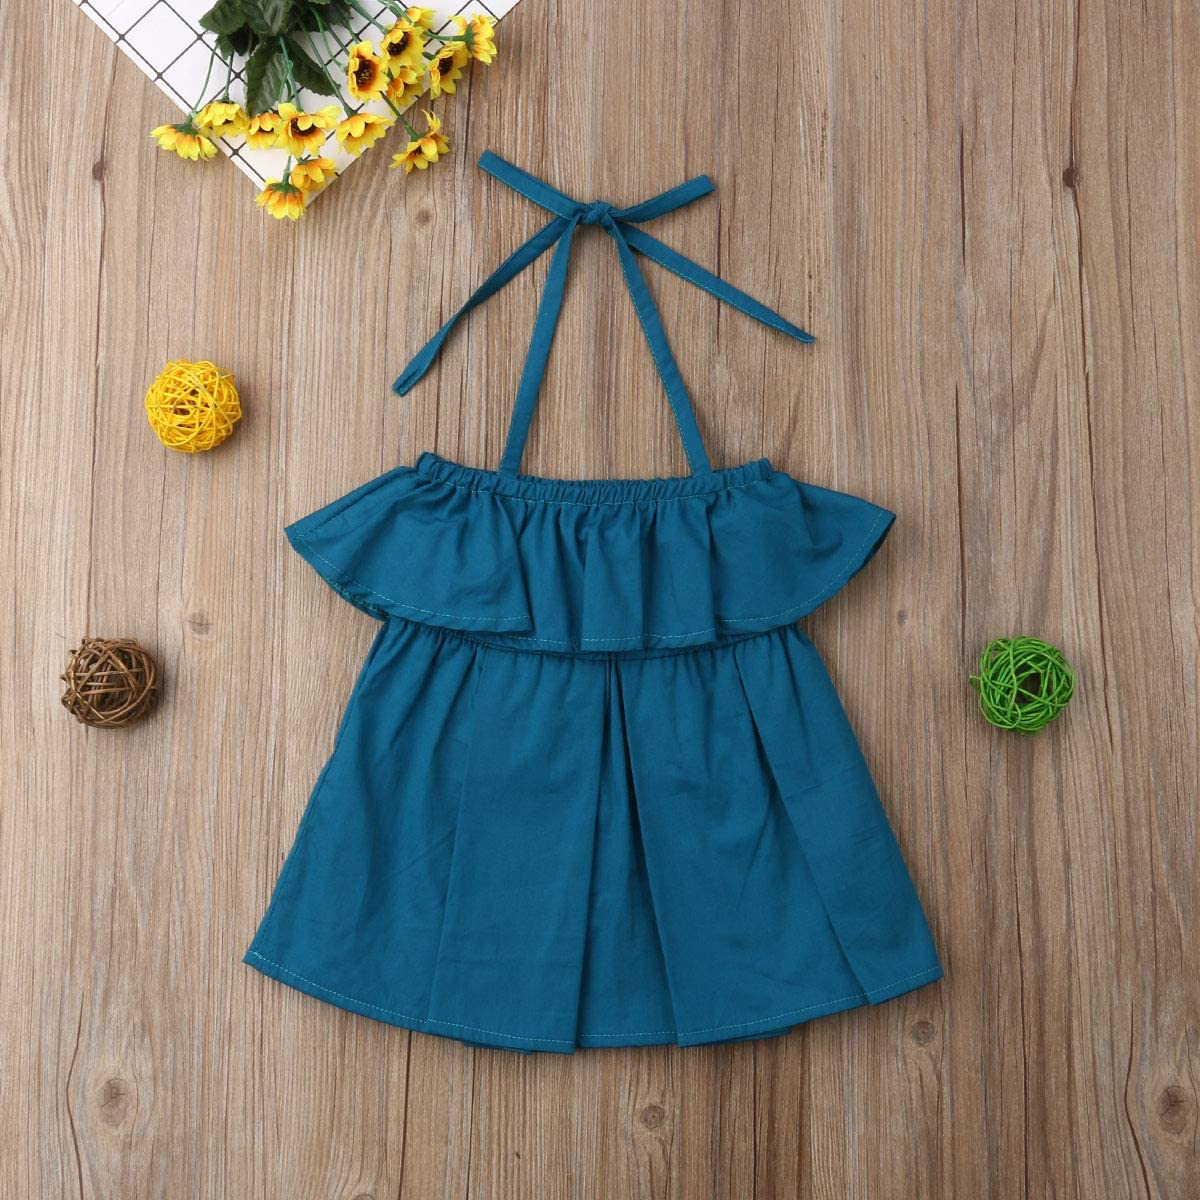 Licupiee Baby Girl One Piece Halter Neck Jumpsuit Rompers Ruffle Hem Bodysuit Outfit Summer Dresses